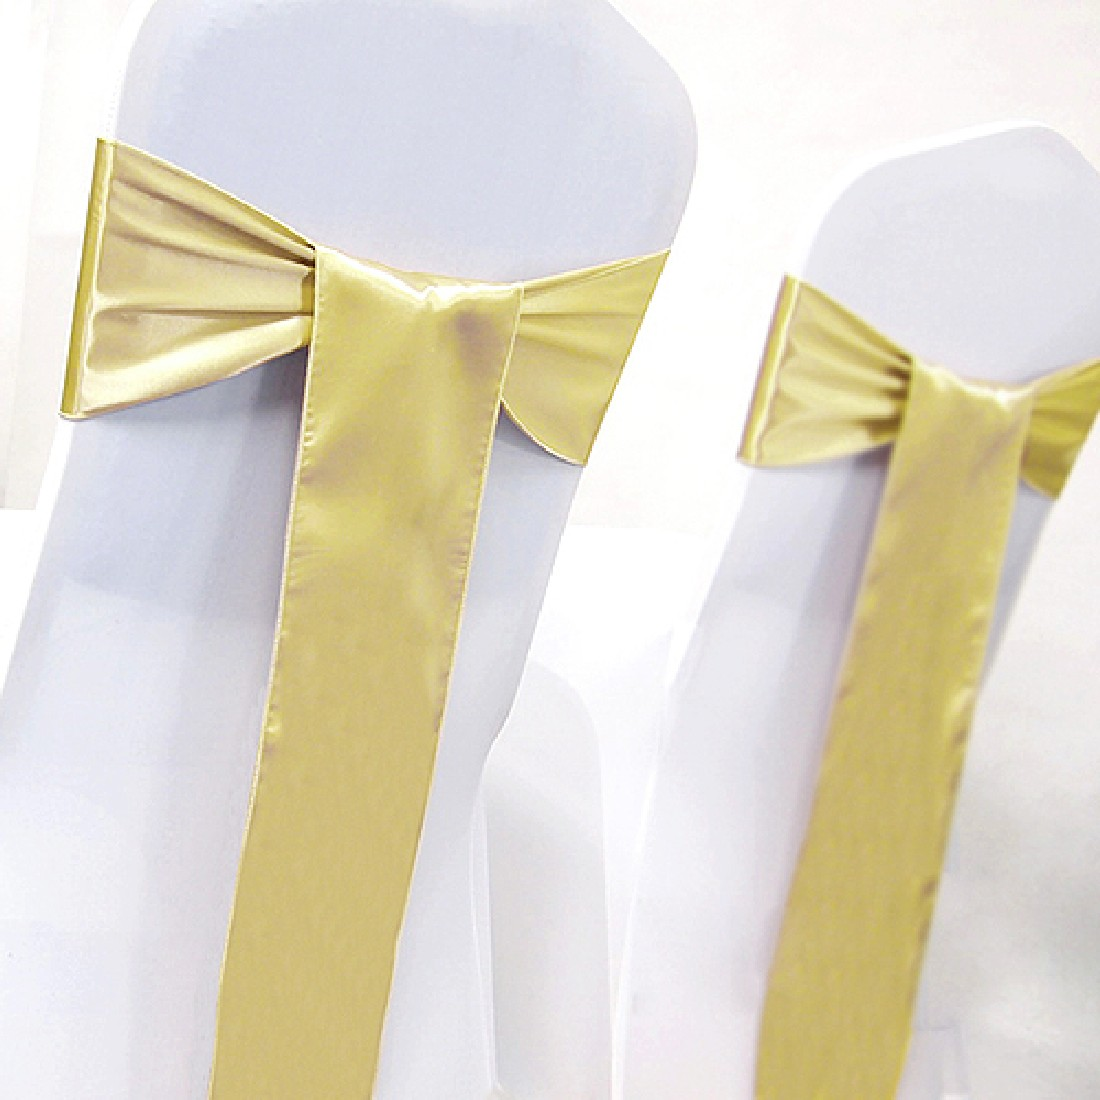 Satin Chair Sash Bow Tie Ribbon Decoration Wedding events supplies party decoration 25 Colors 2016